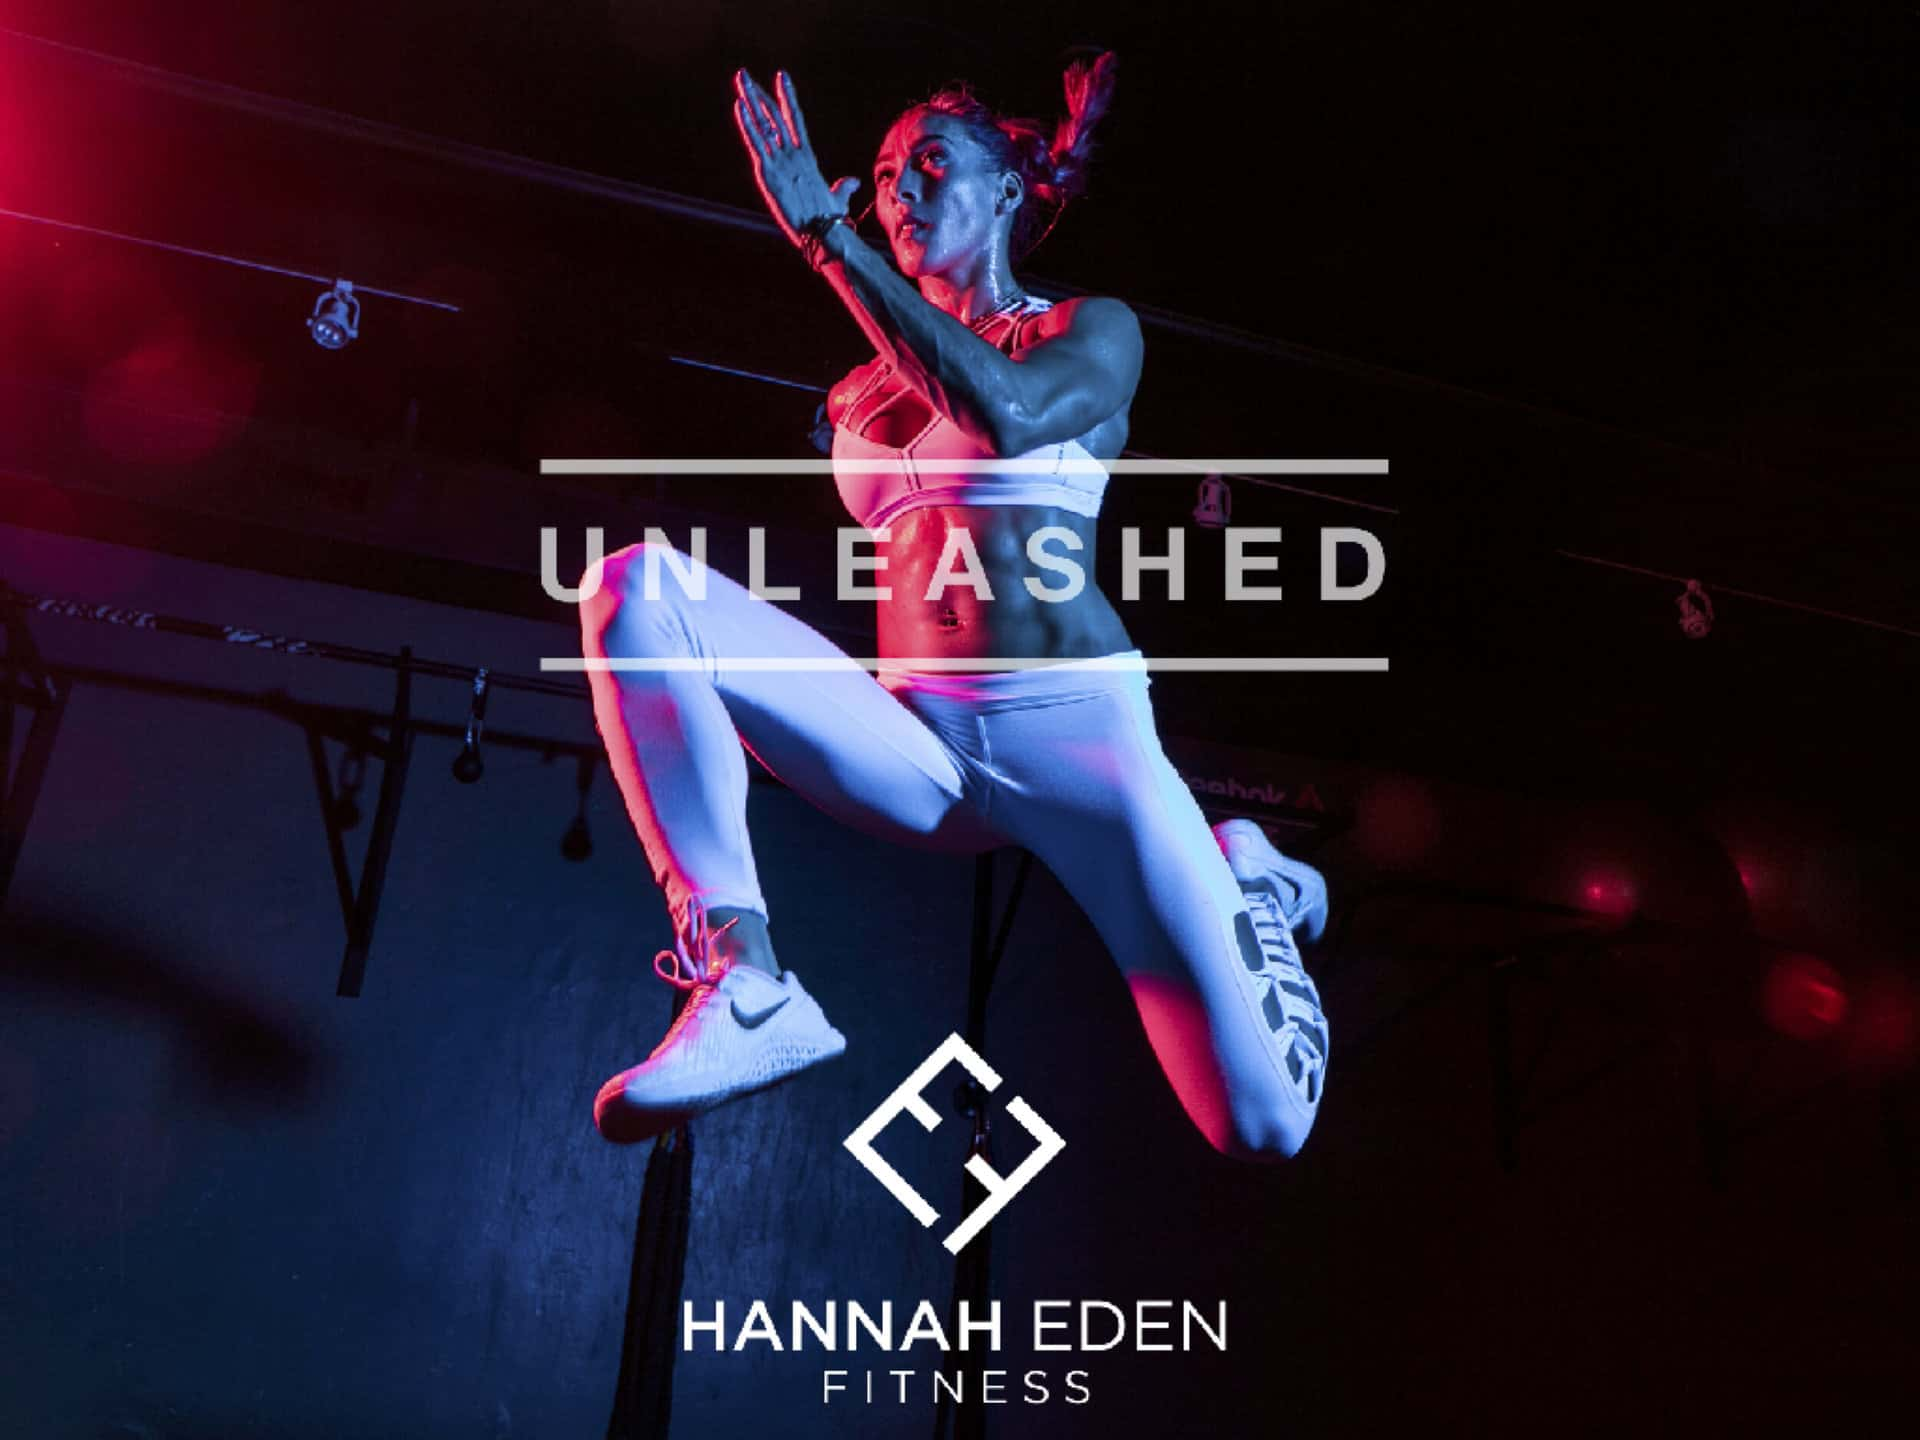 unleashed cover.jpg